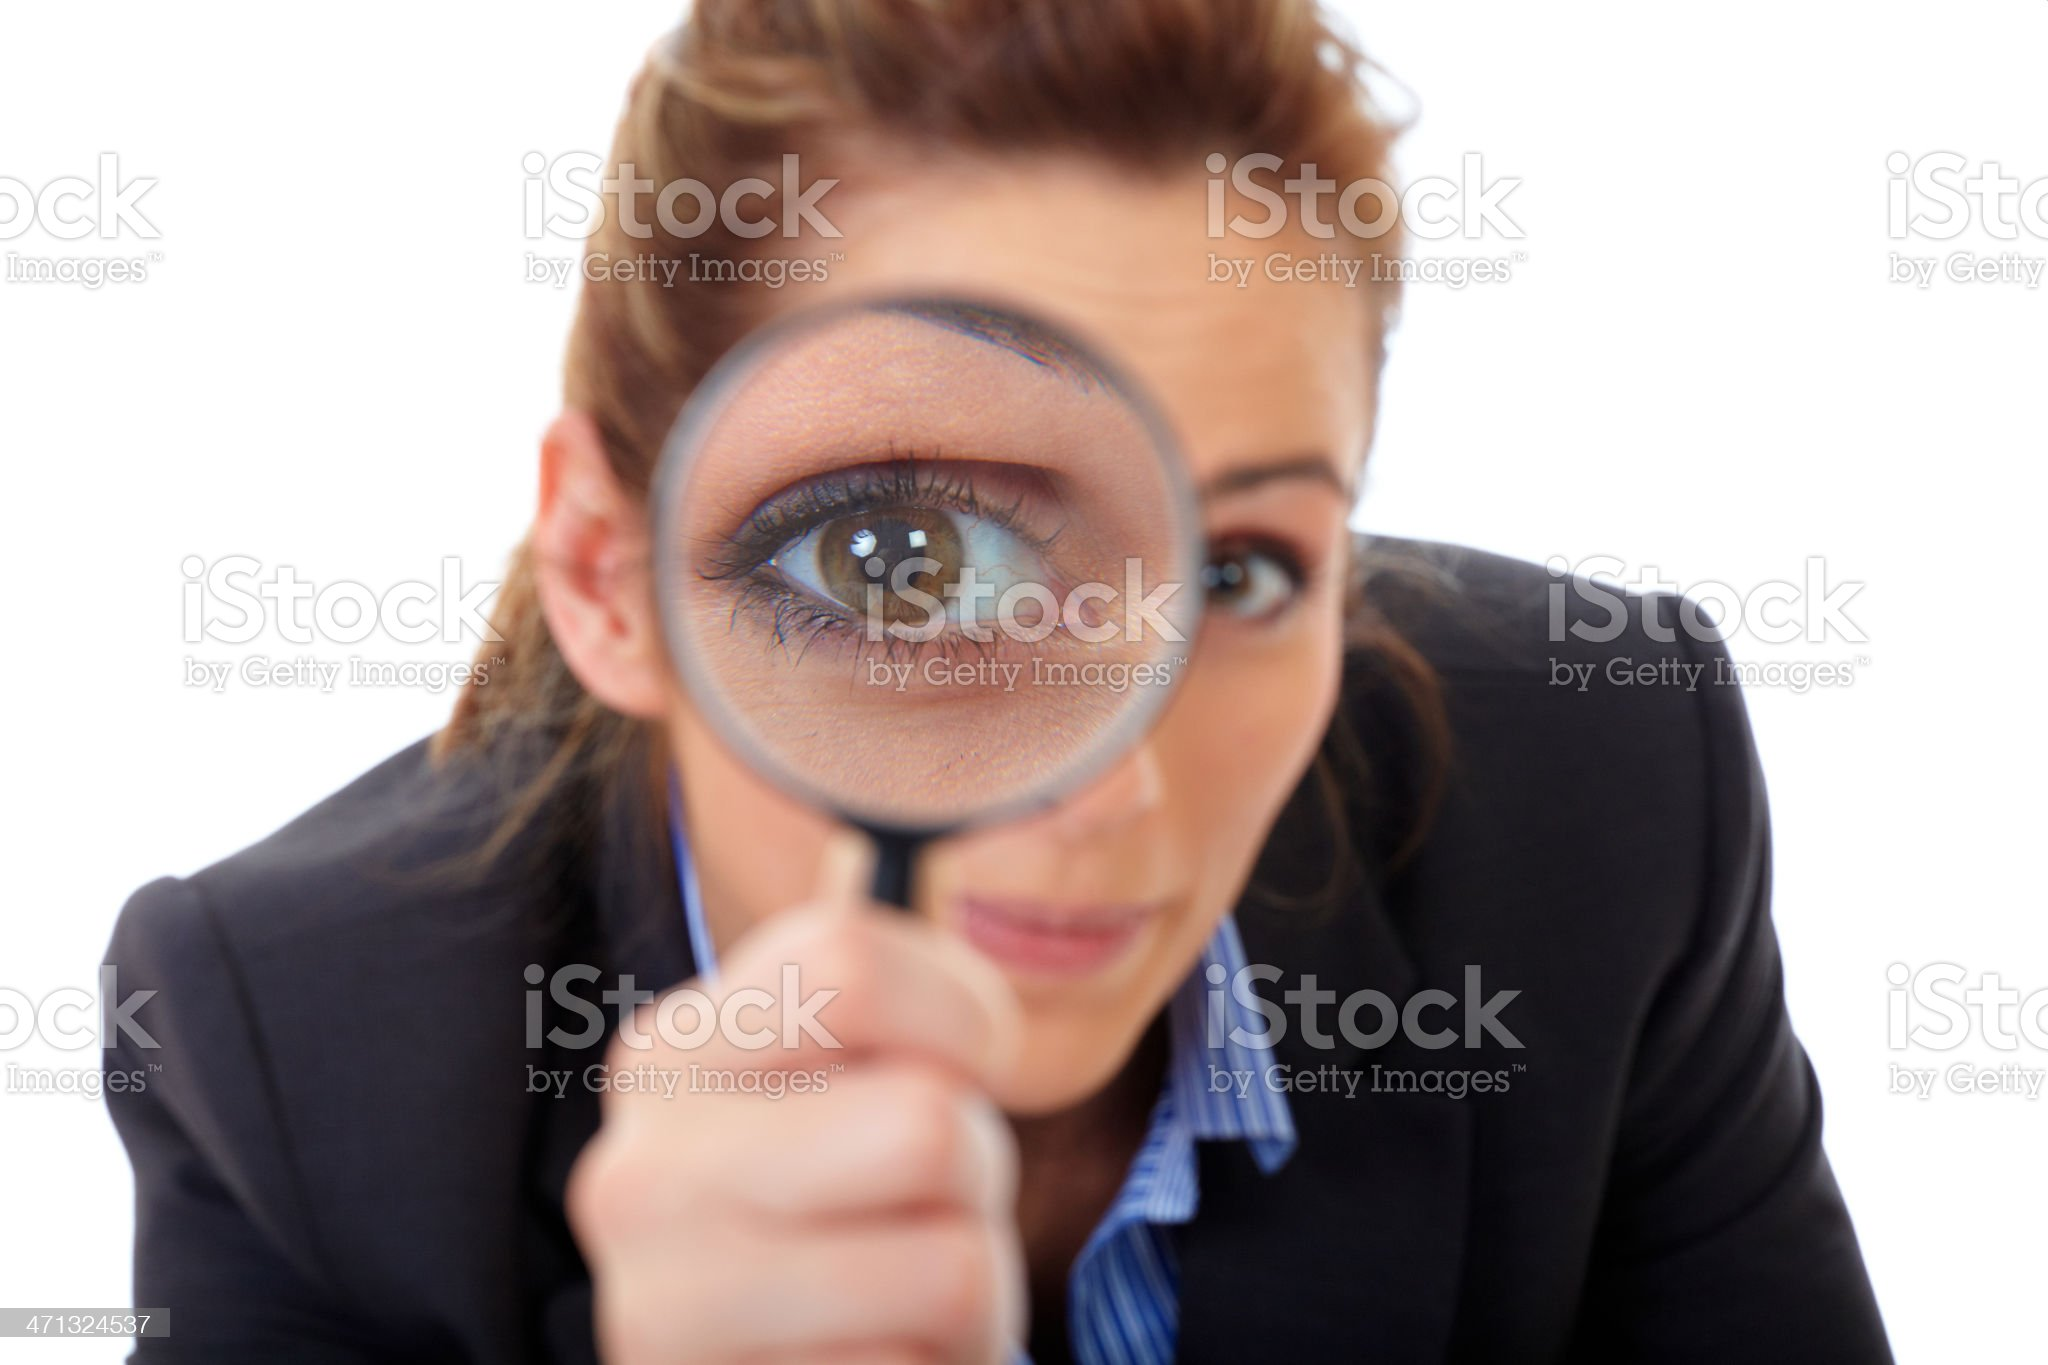 Smiling woman holding a magnifying glass over one eye royalty-free stock photo